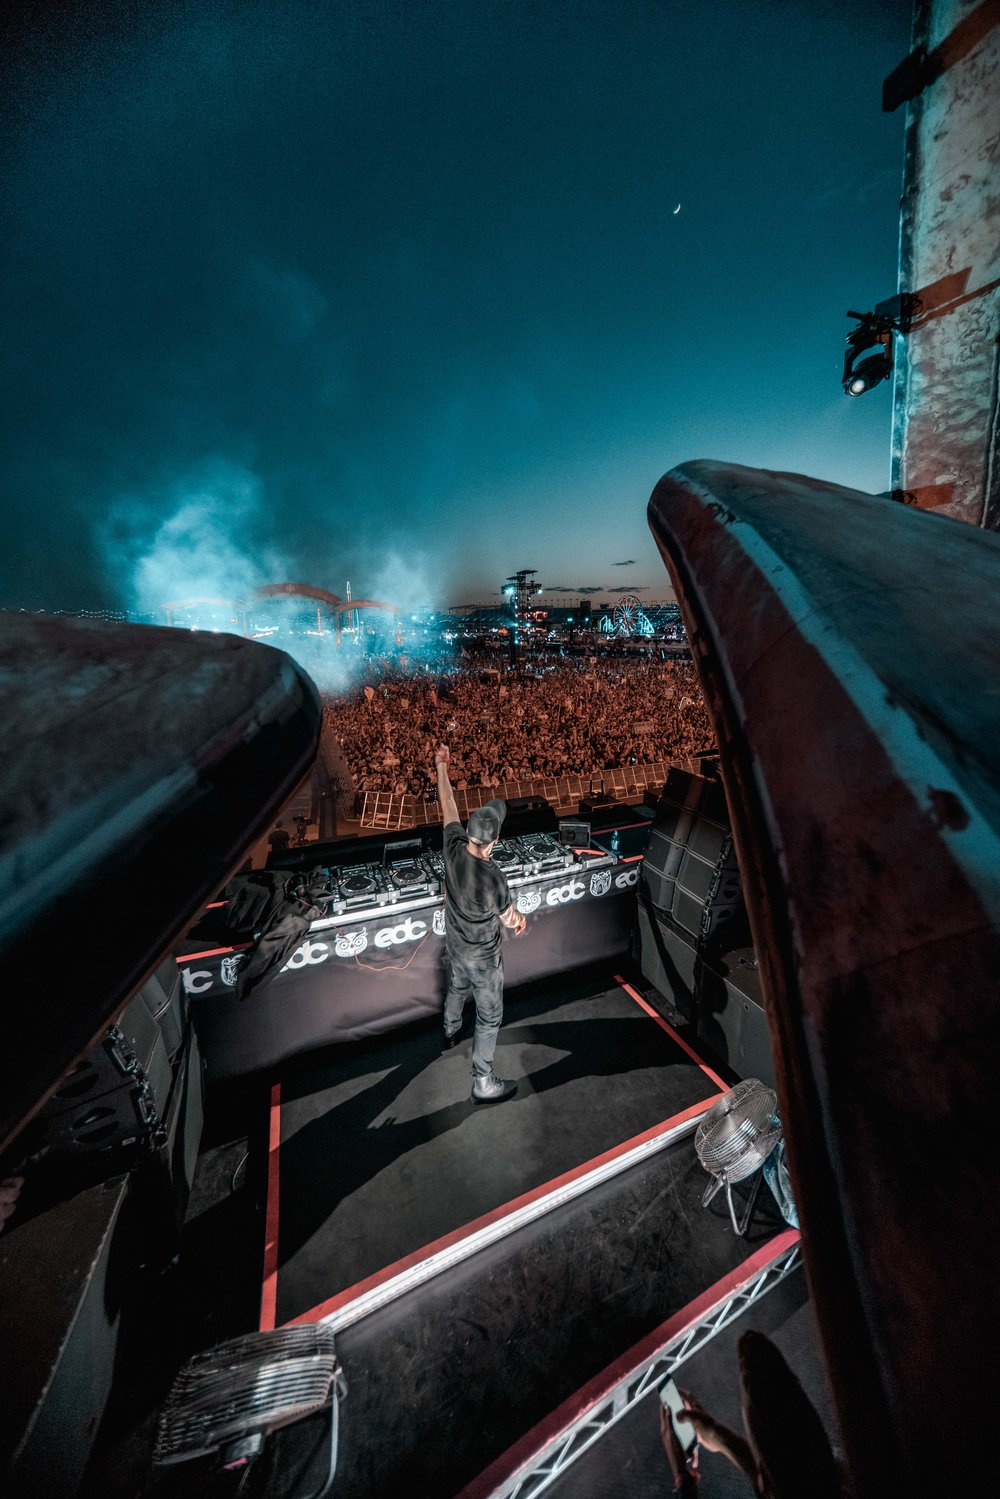 Artist: Dombresky  Festival: Electric Daisy Carnival  Event Photography and Highlight Video 05/18/18